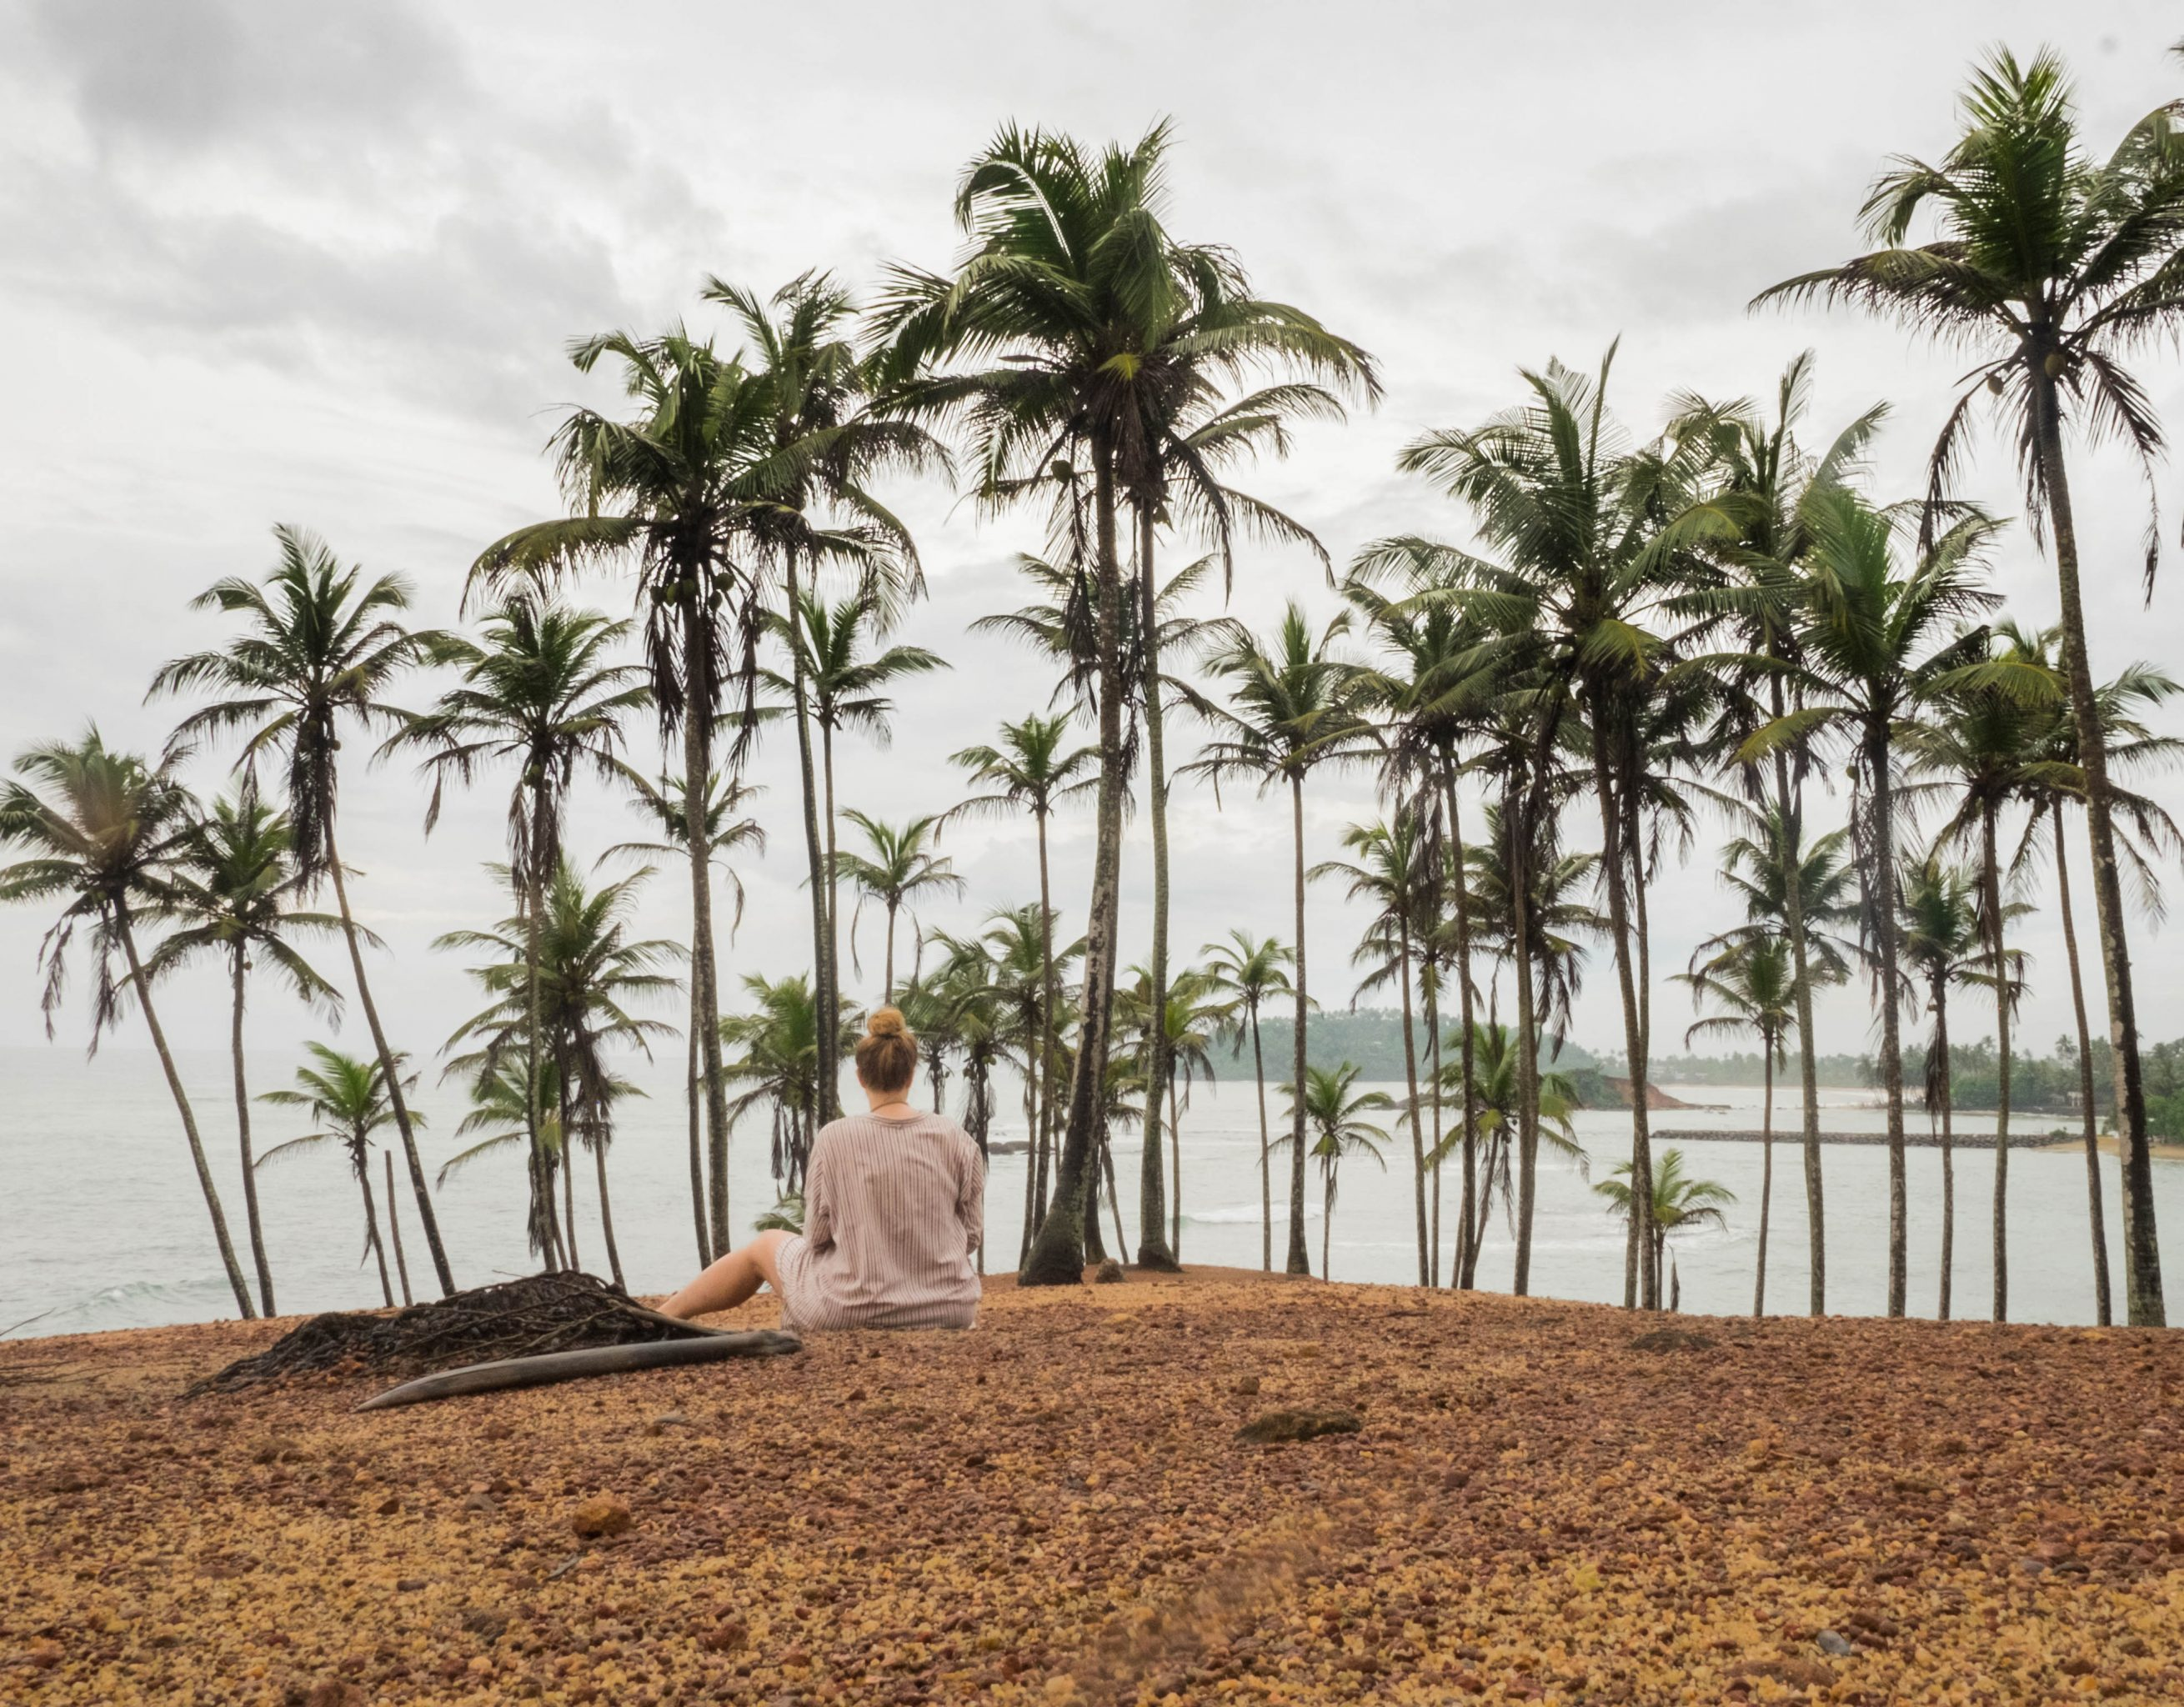 Looking for one of the best beaches in Sri Lanka? I am sharing some great tips on where to stay in Mirissa beach, what to do and the best restaurants for Sri Lankan and international dishes as well as an ethical company to go whale watching in Mirissa.